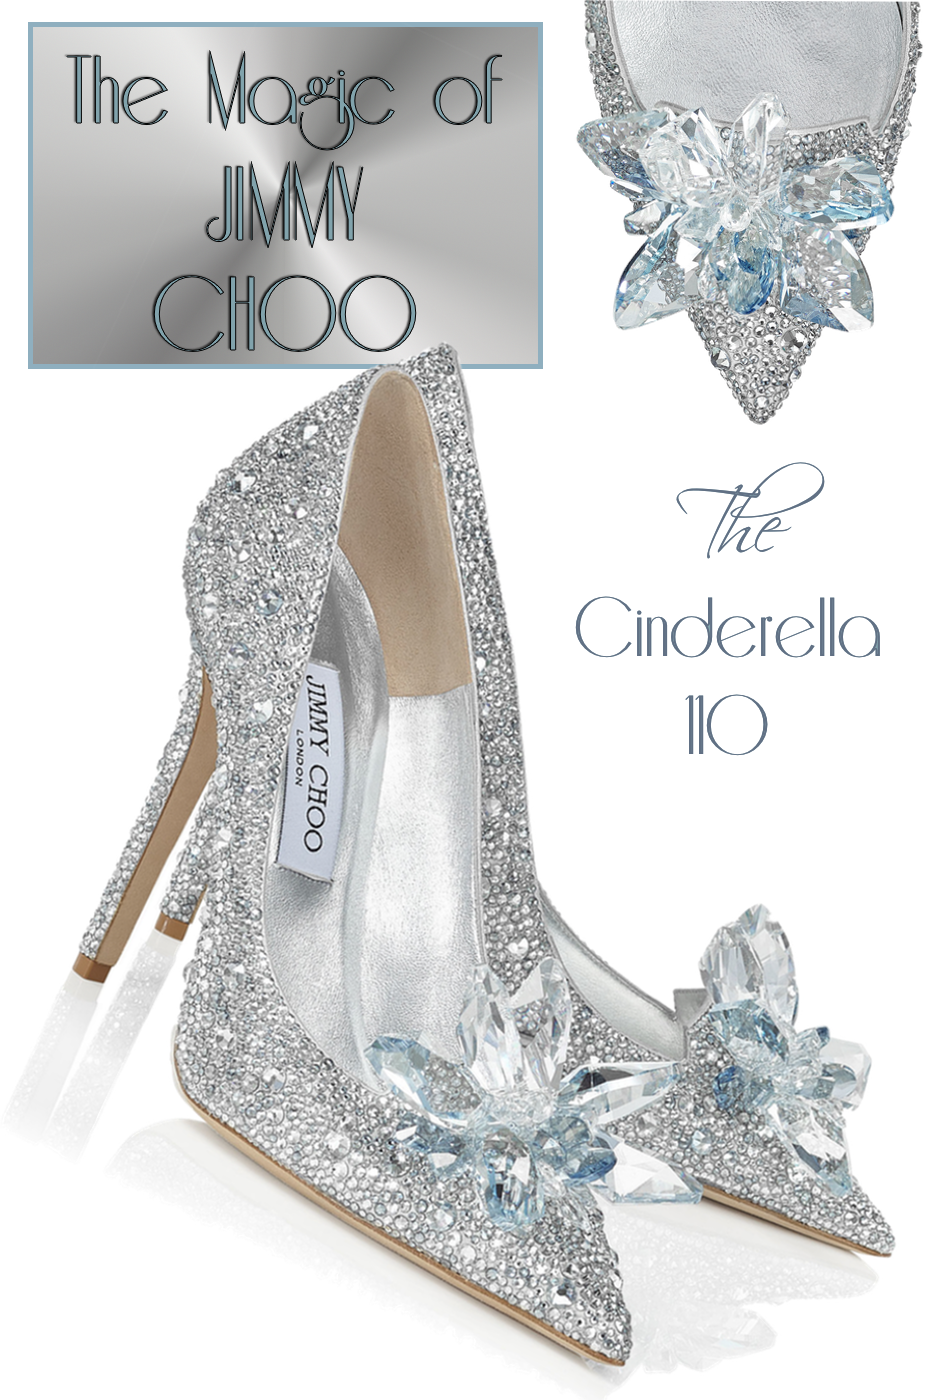 Jimmy Choo Cinderella 110 Crystal Covered Pointy Toe Slipper